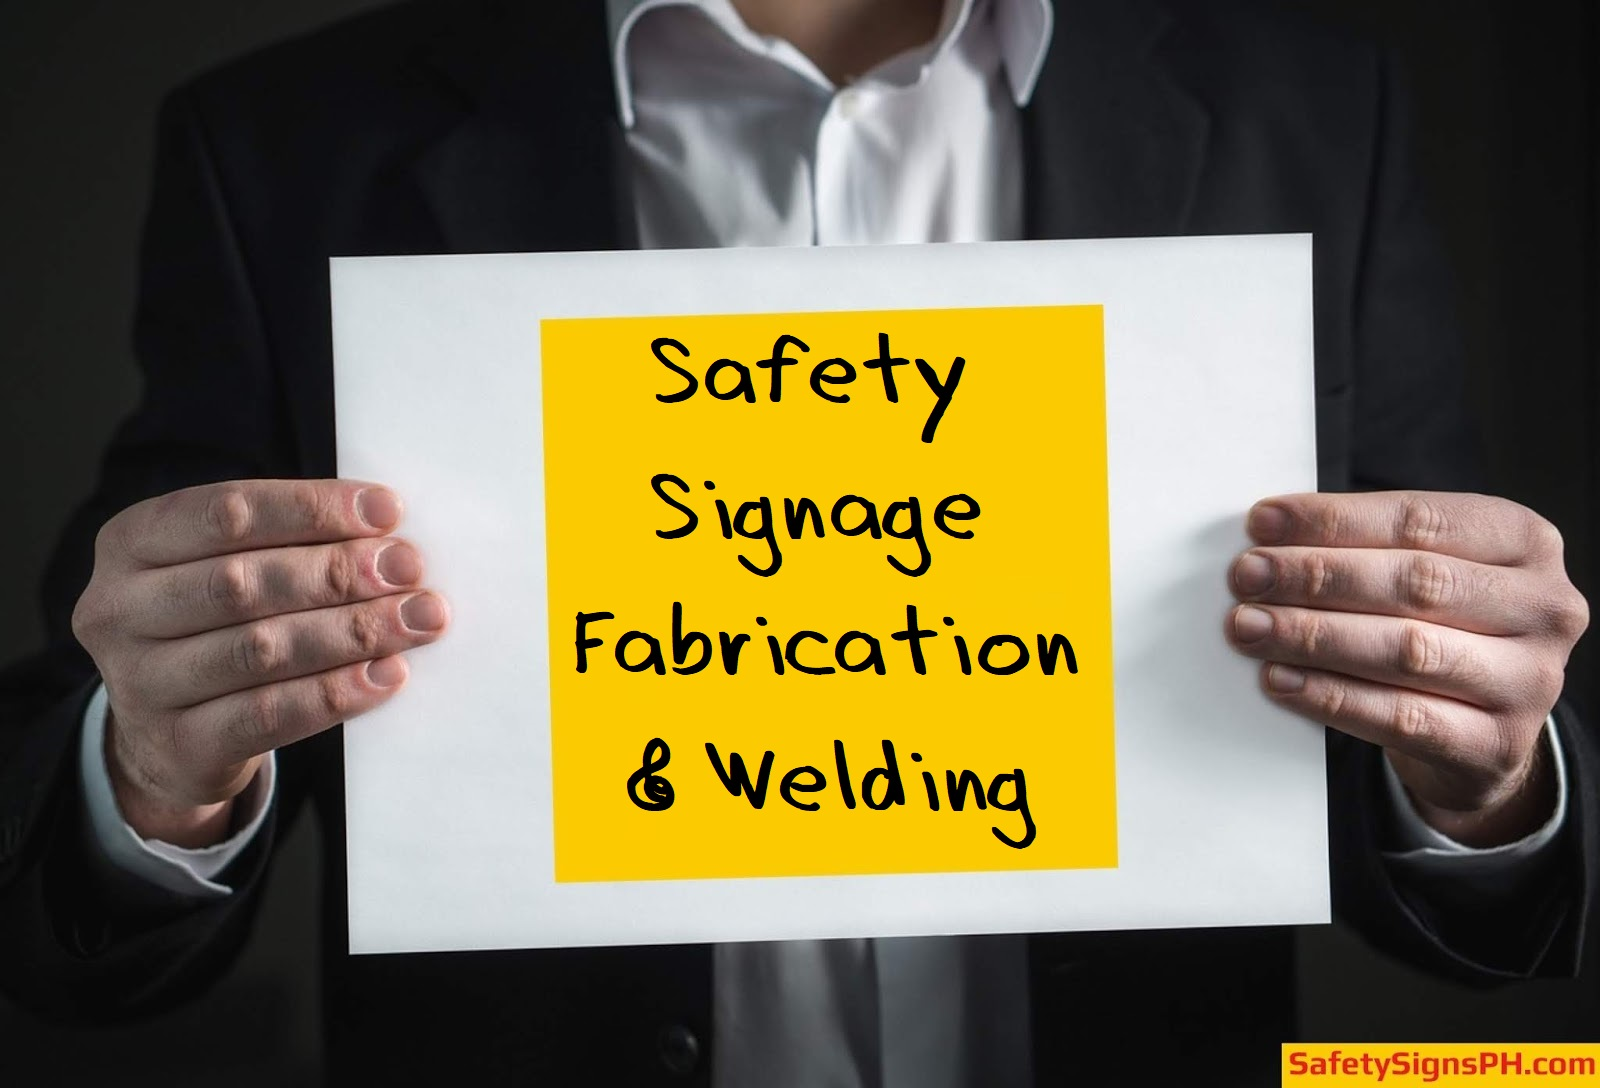 Safety Signage Fabrication & Welding Services Philippines